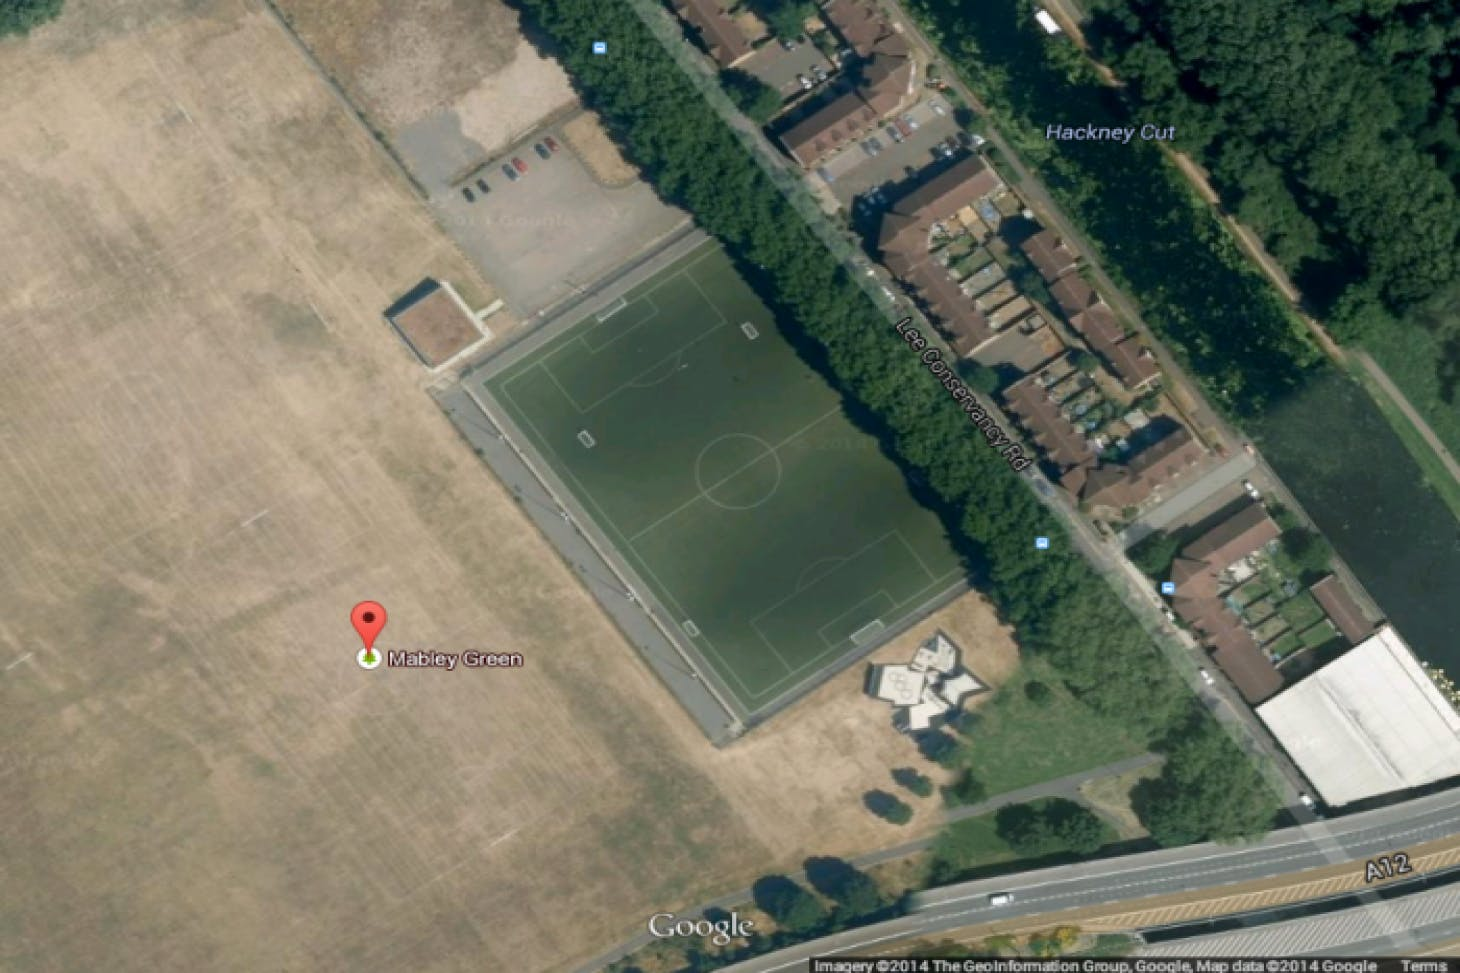 Mabley Green 11 a side | Grass football pitch